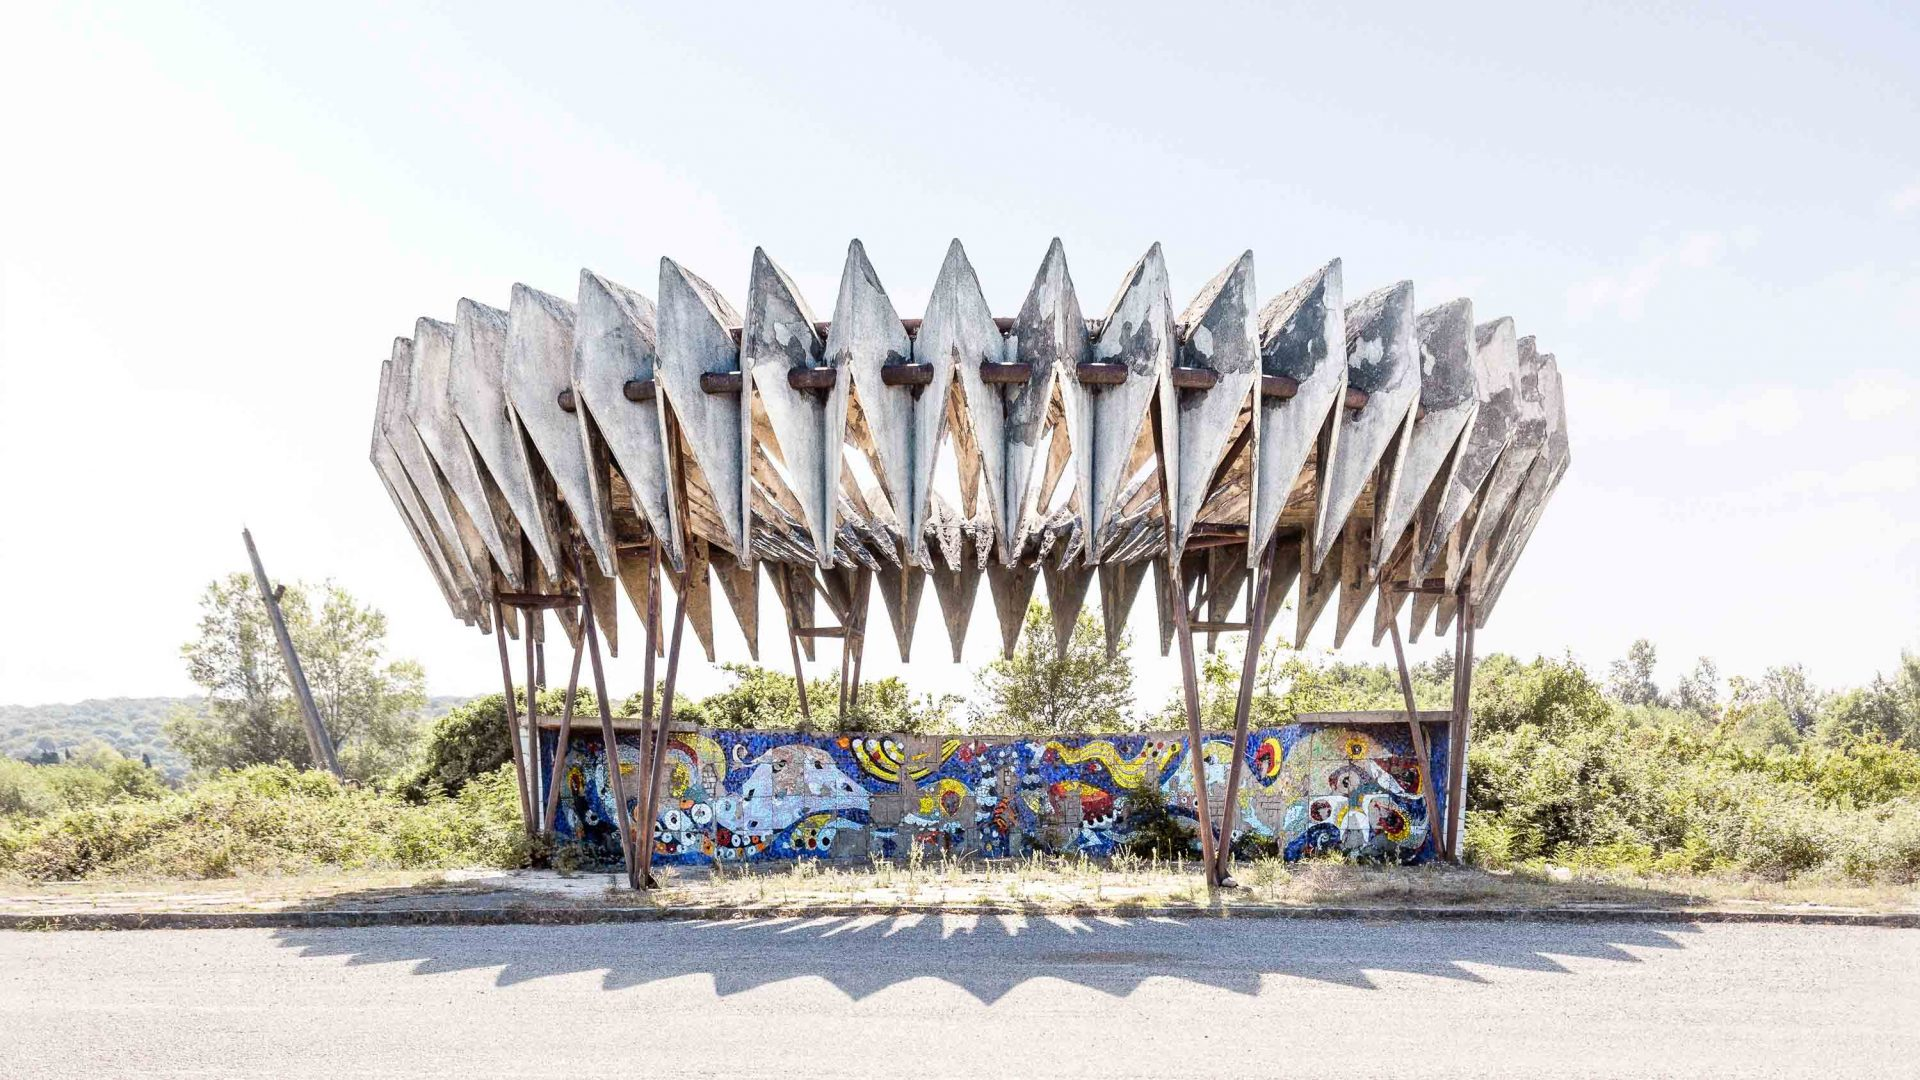 Photographing the brutally beautiful bus stops of the former Soviet Union